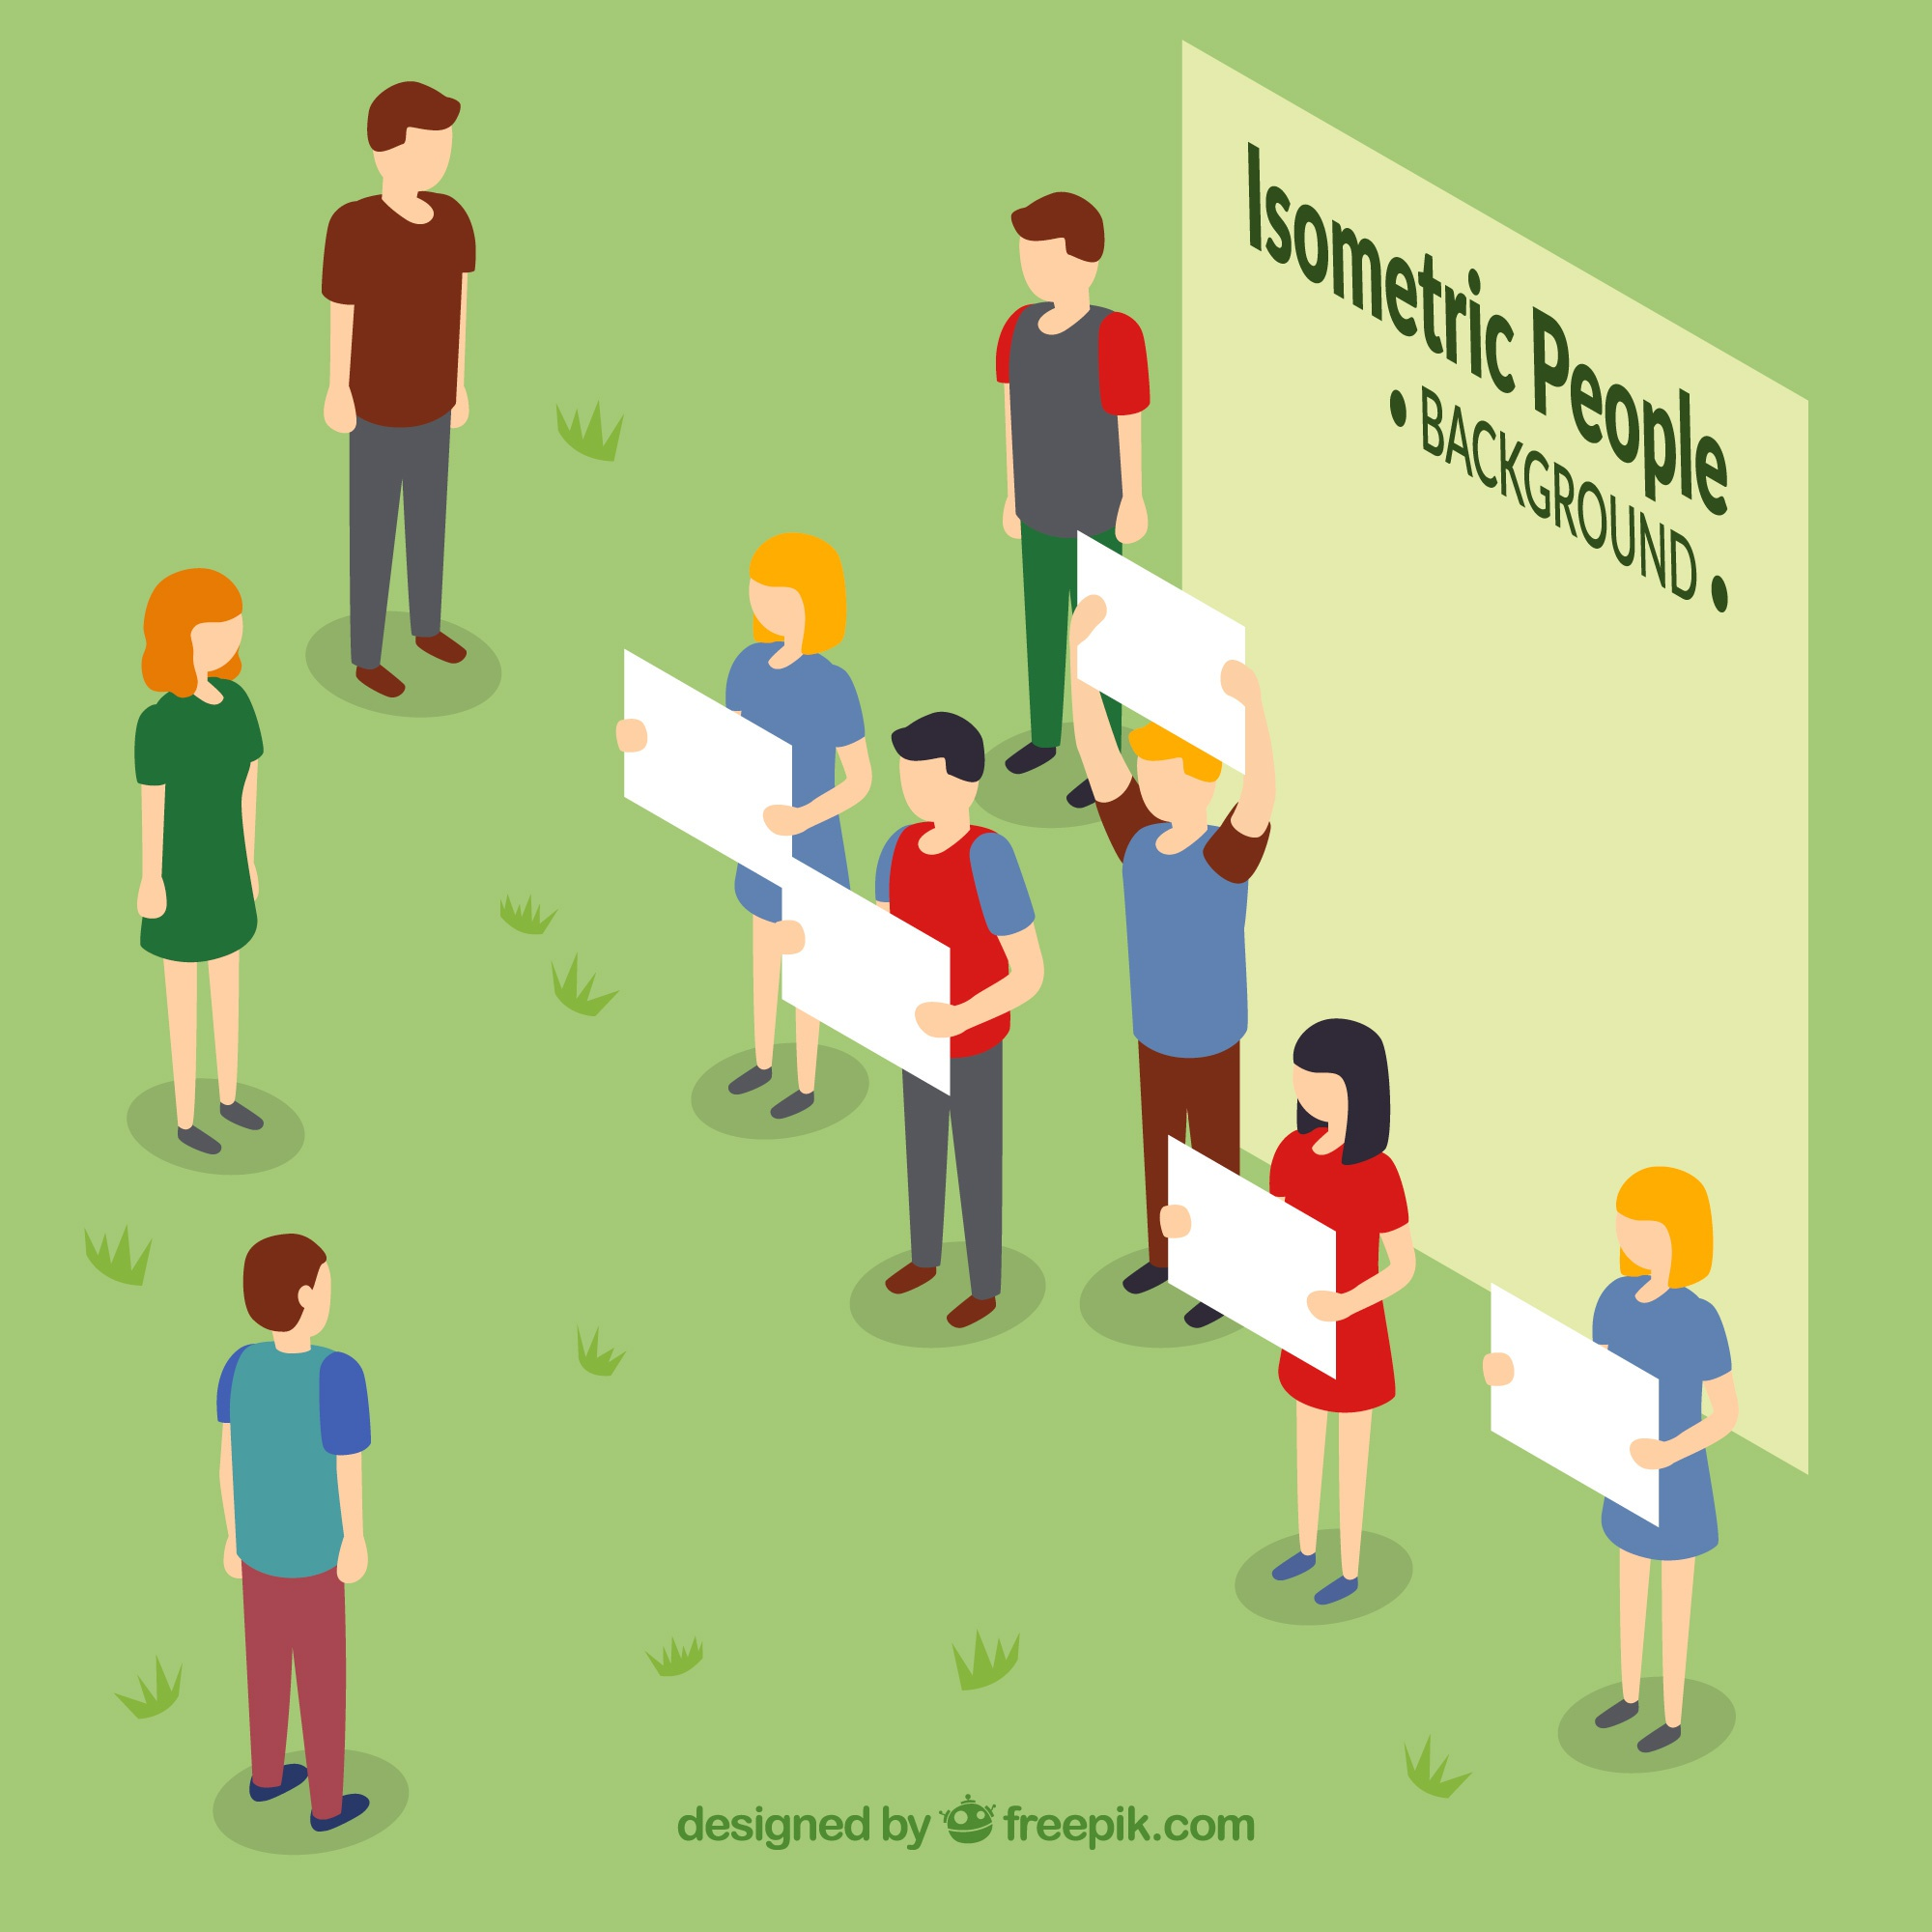 Background of people with white posters in isometric perspective